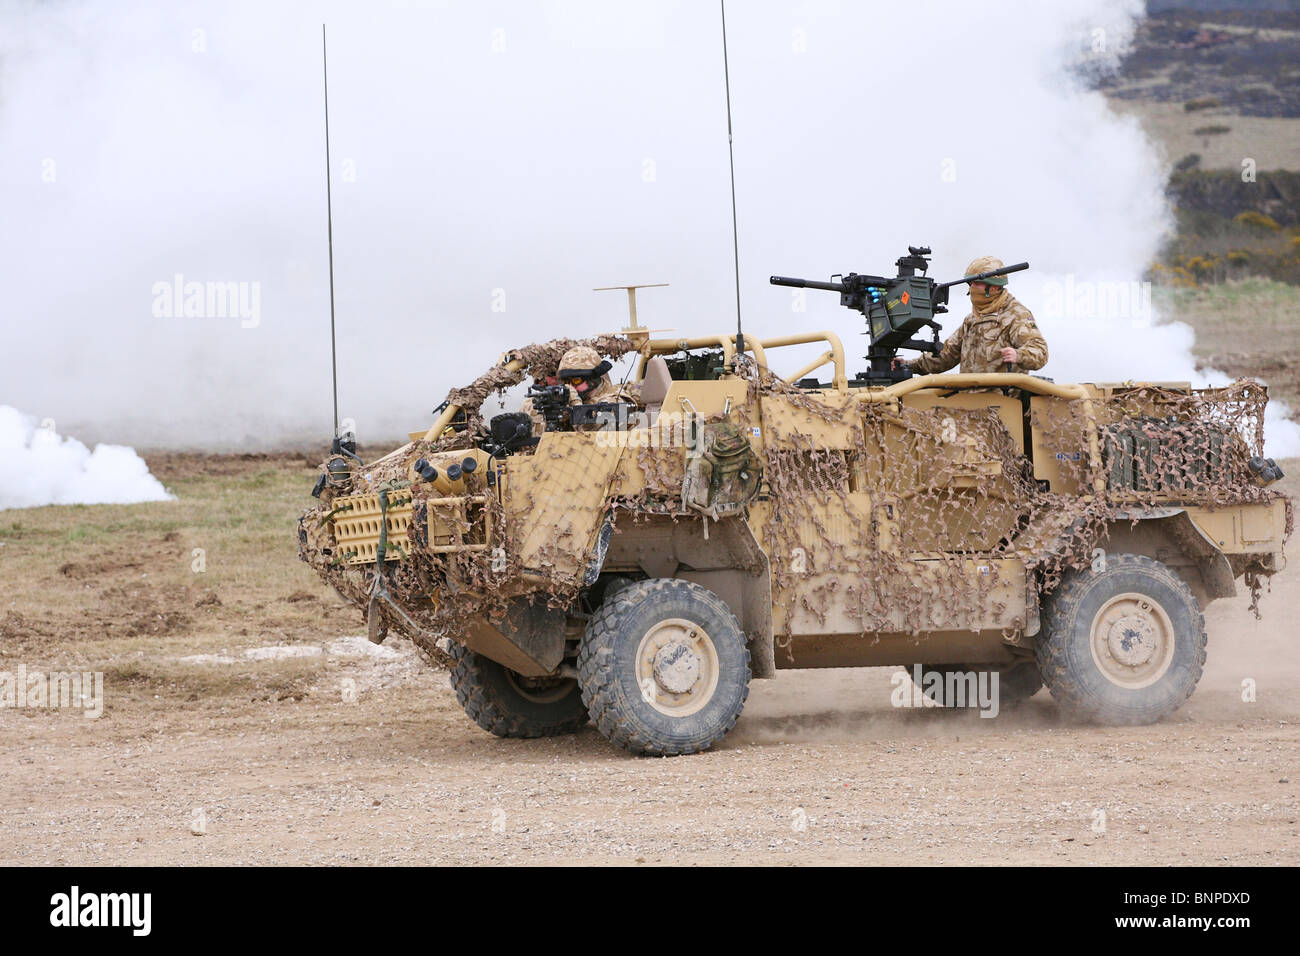 British Army Jackal Armoured Vehicle Stock Photo